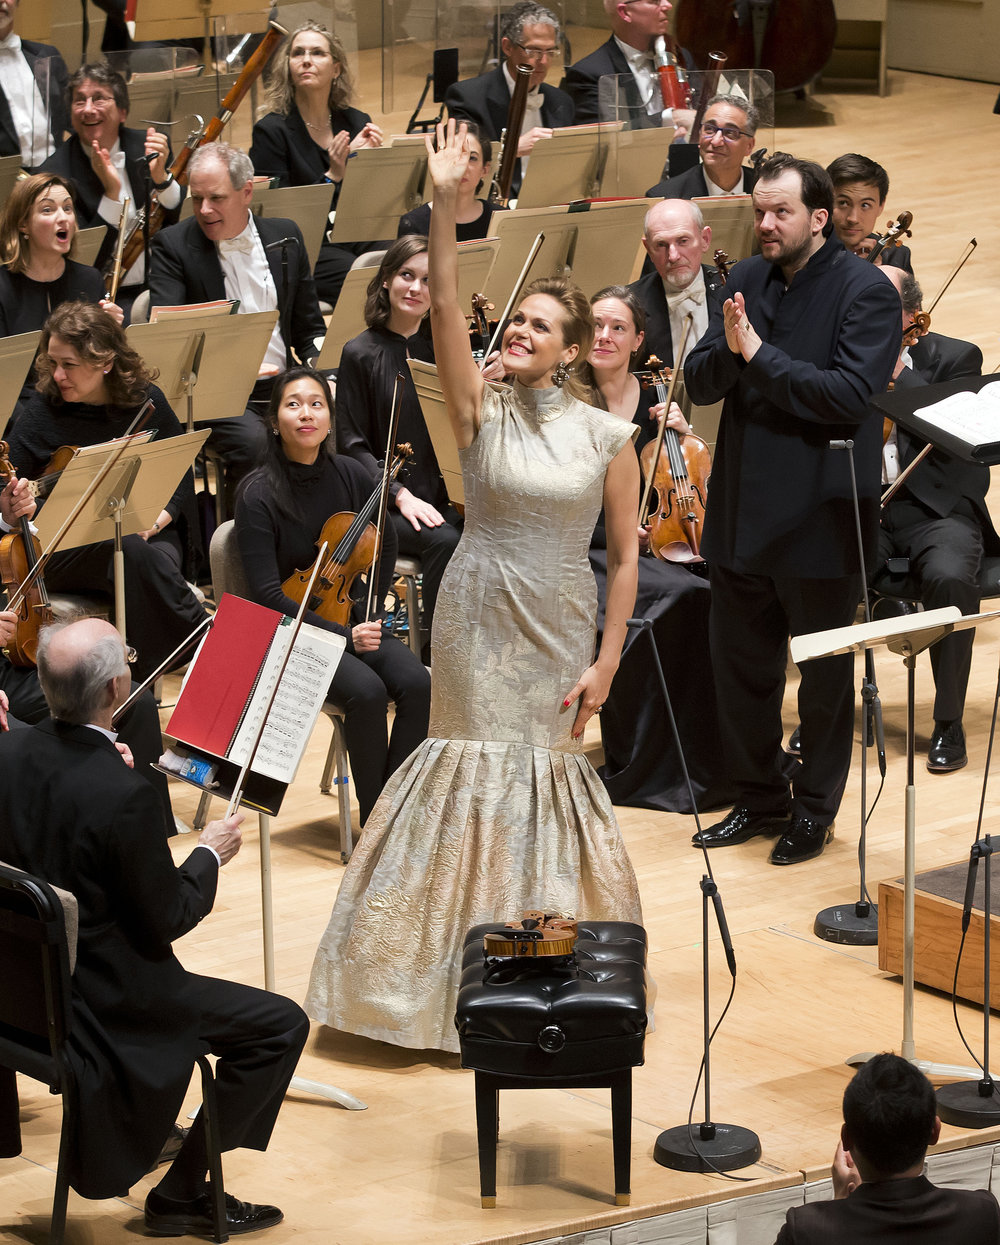 Friends in the balcony? Soprano Kristine Opolais waves after Mahler's Fourth, with Andris Nelsons and the Boston Symphony Orchestra. Winslow Townson photograph.